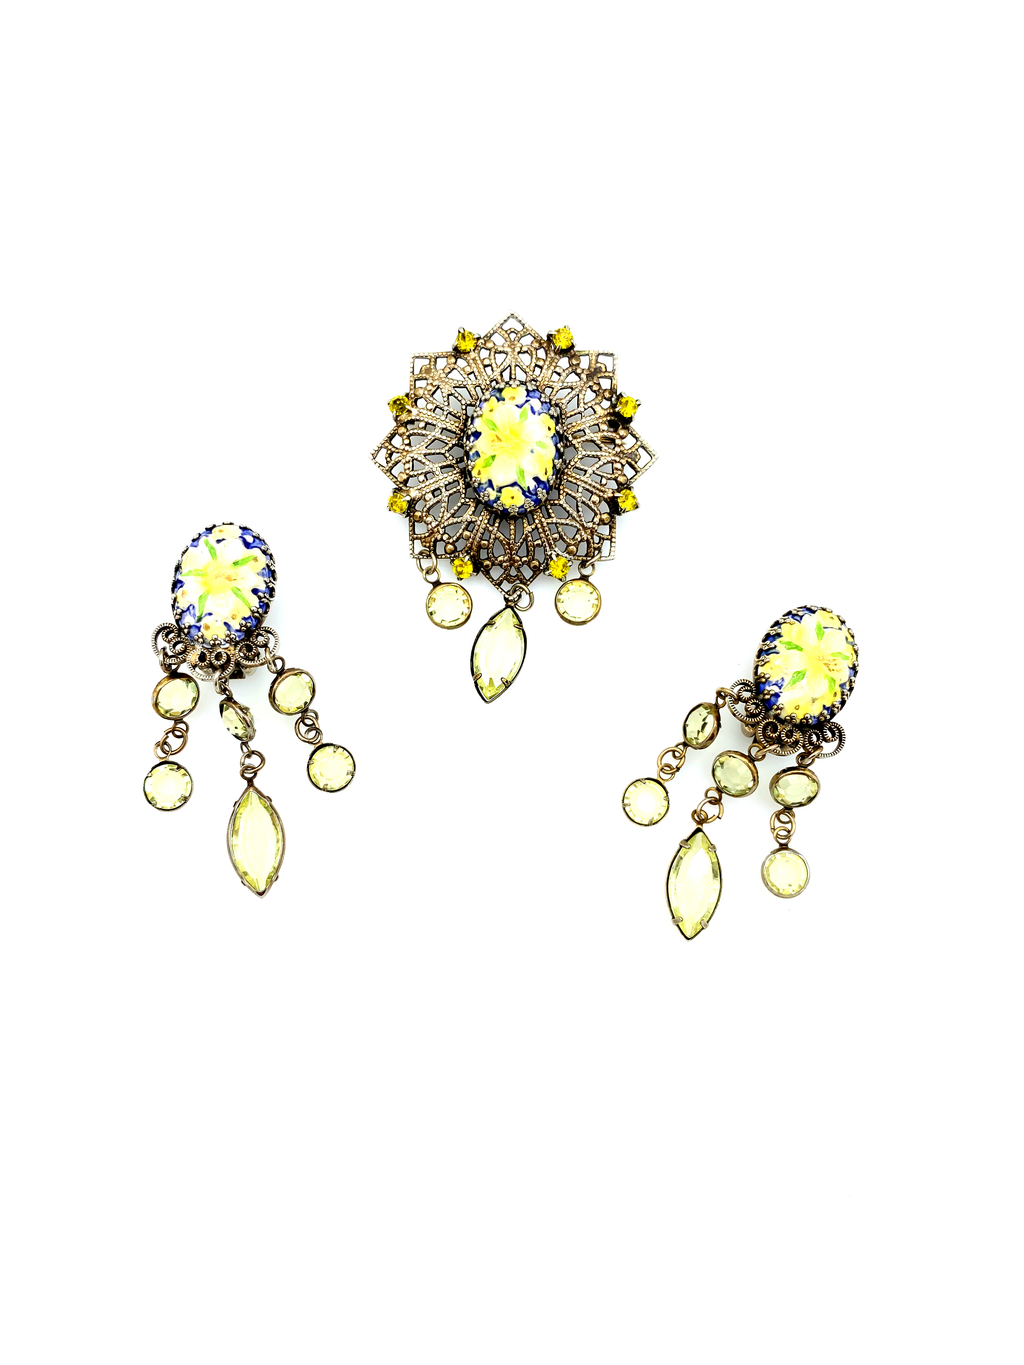 Hobe Yellow Enamel & Crystal Victorian Revival Floral Jewelry Set-Sustainable Fashion with Vintage Style-Trending Designer Fashion-24 Wishes